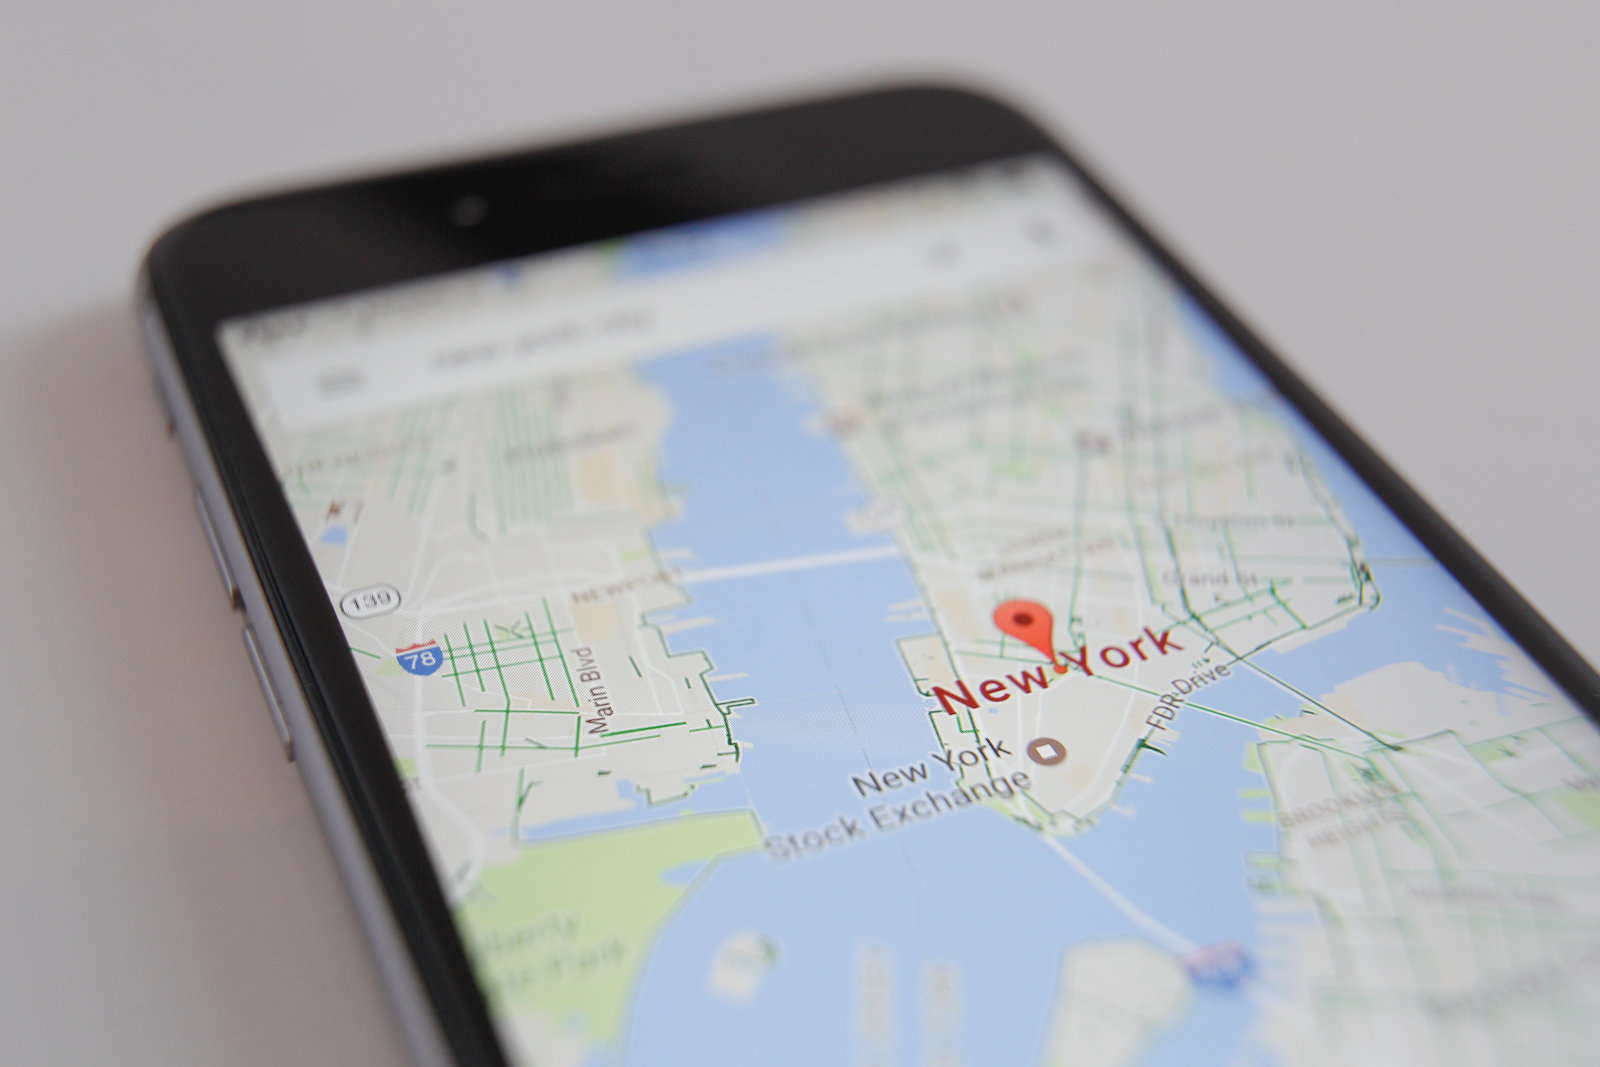 The Google Maps app is seen displaying part of the Manhatten district of New York City on an iPhone on 16 March, 2017. (Photo by Jaap Arriens/NurPhoto via Getty Images)